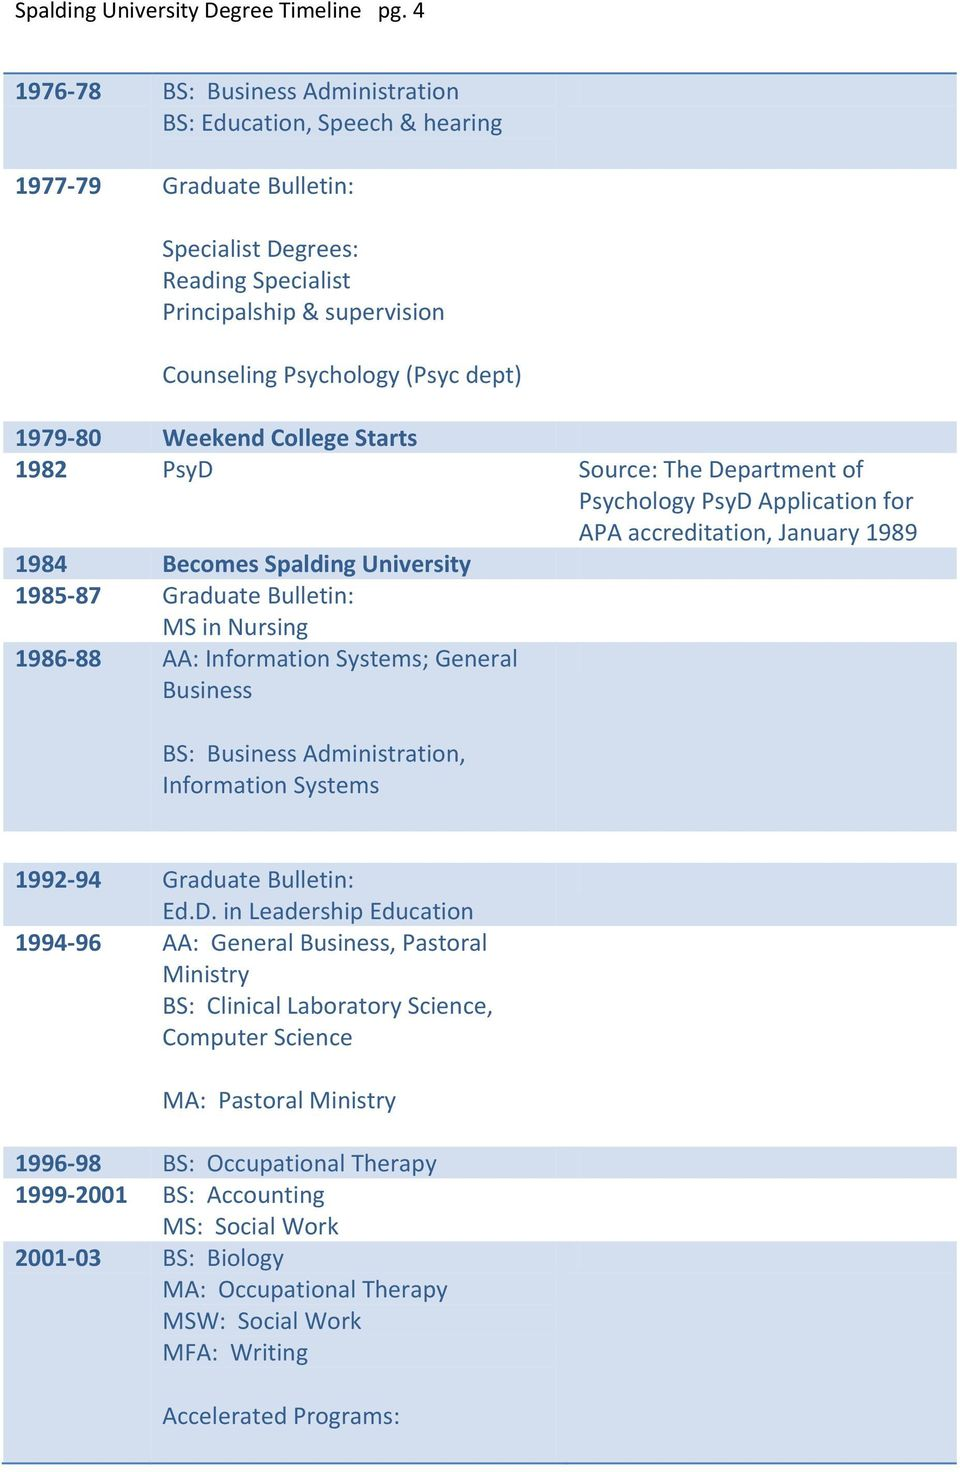 1979-80 Weekend College Starts 1982 PsyD Source: The Department of Psychology PsyD Application for APA accreditation, January 1989 1984 Becomes Spalding University 1985-87 Graduate Bulletin: MS in